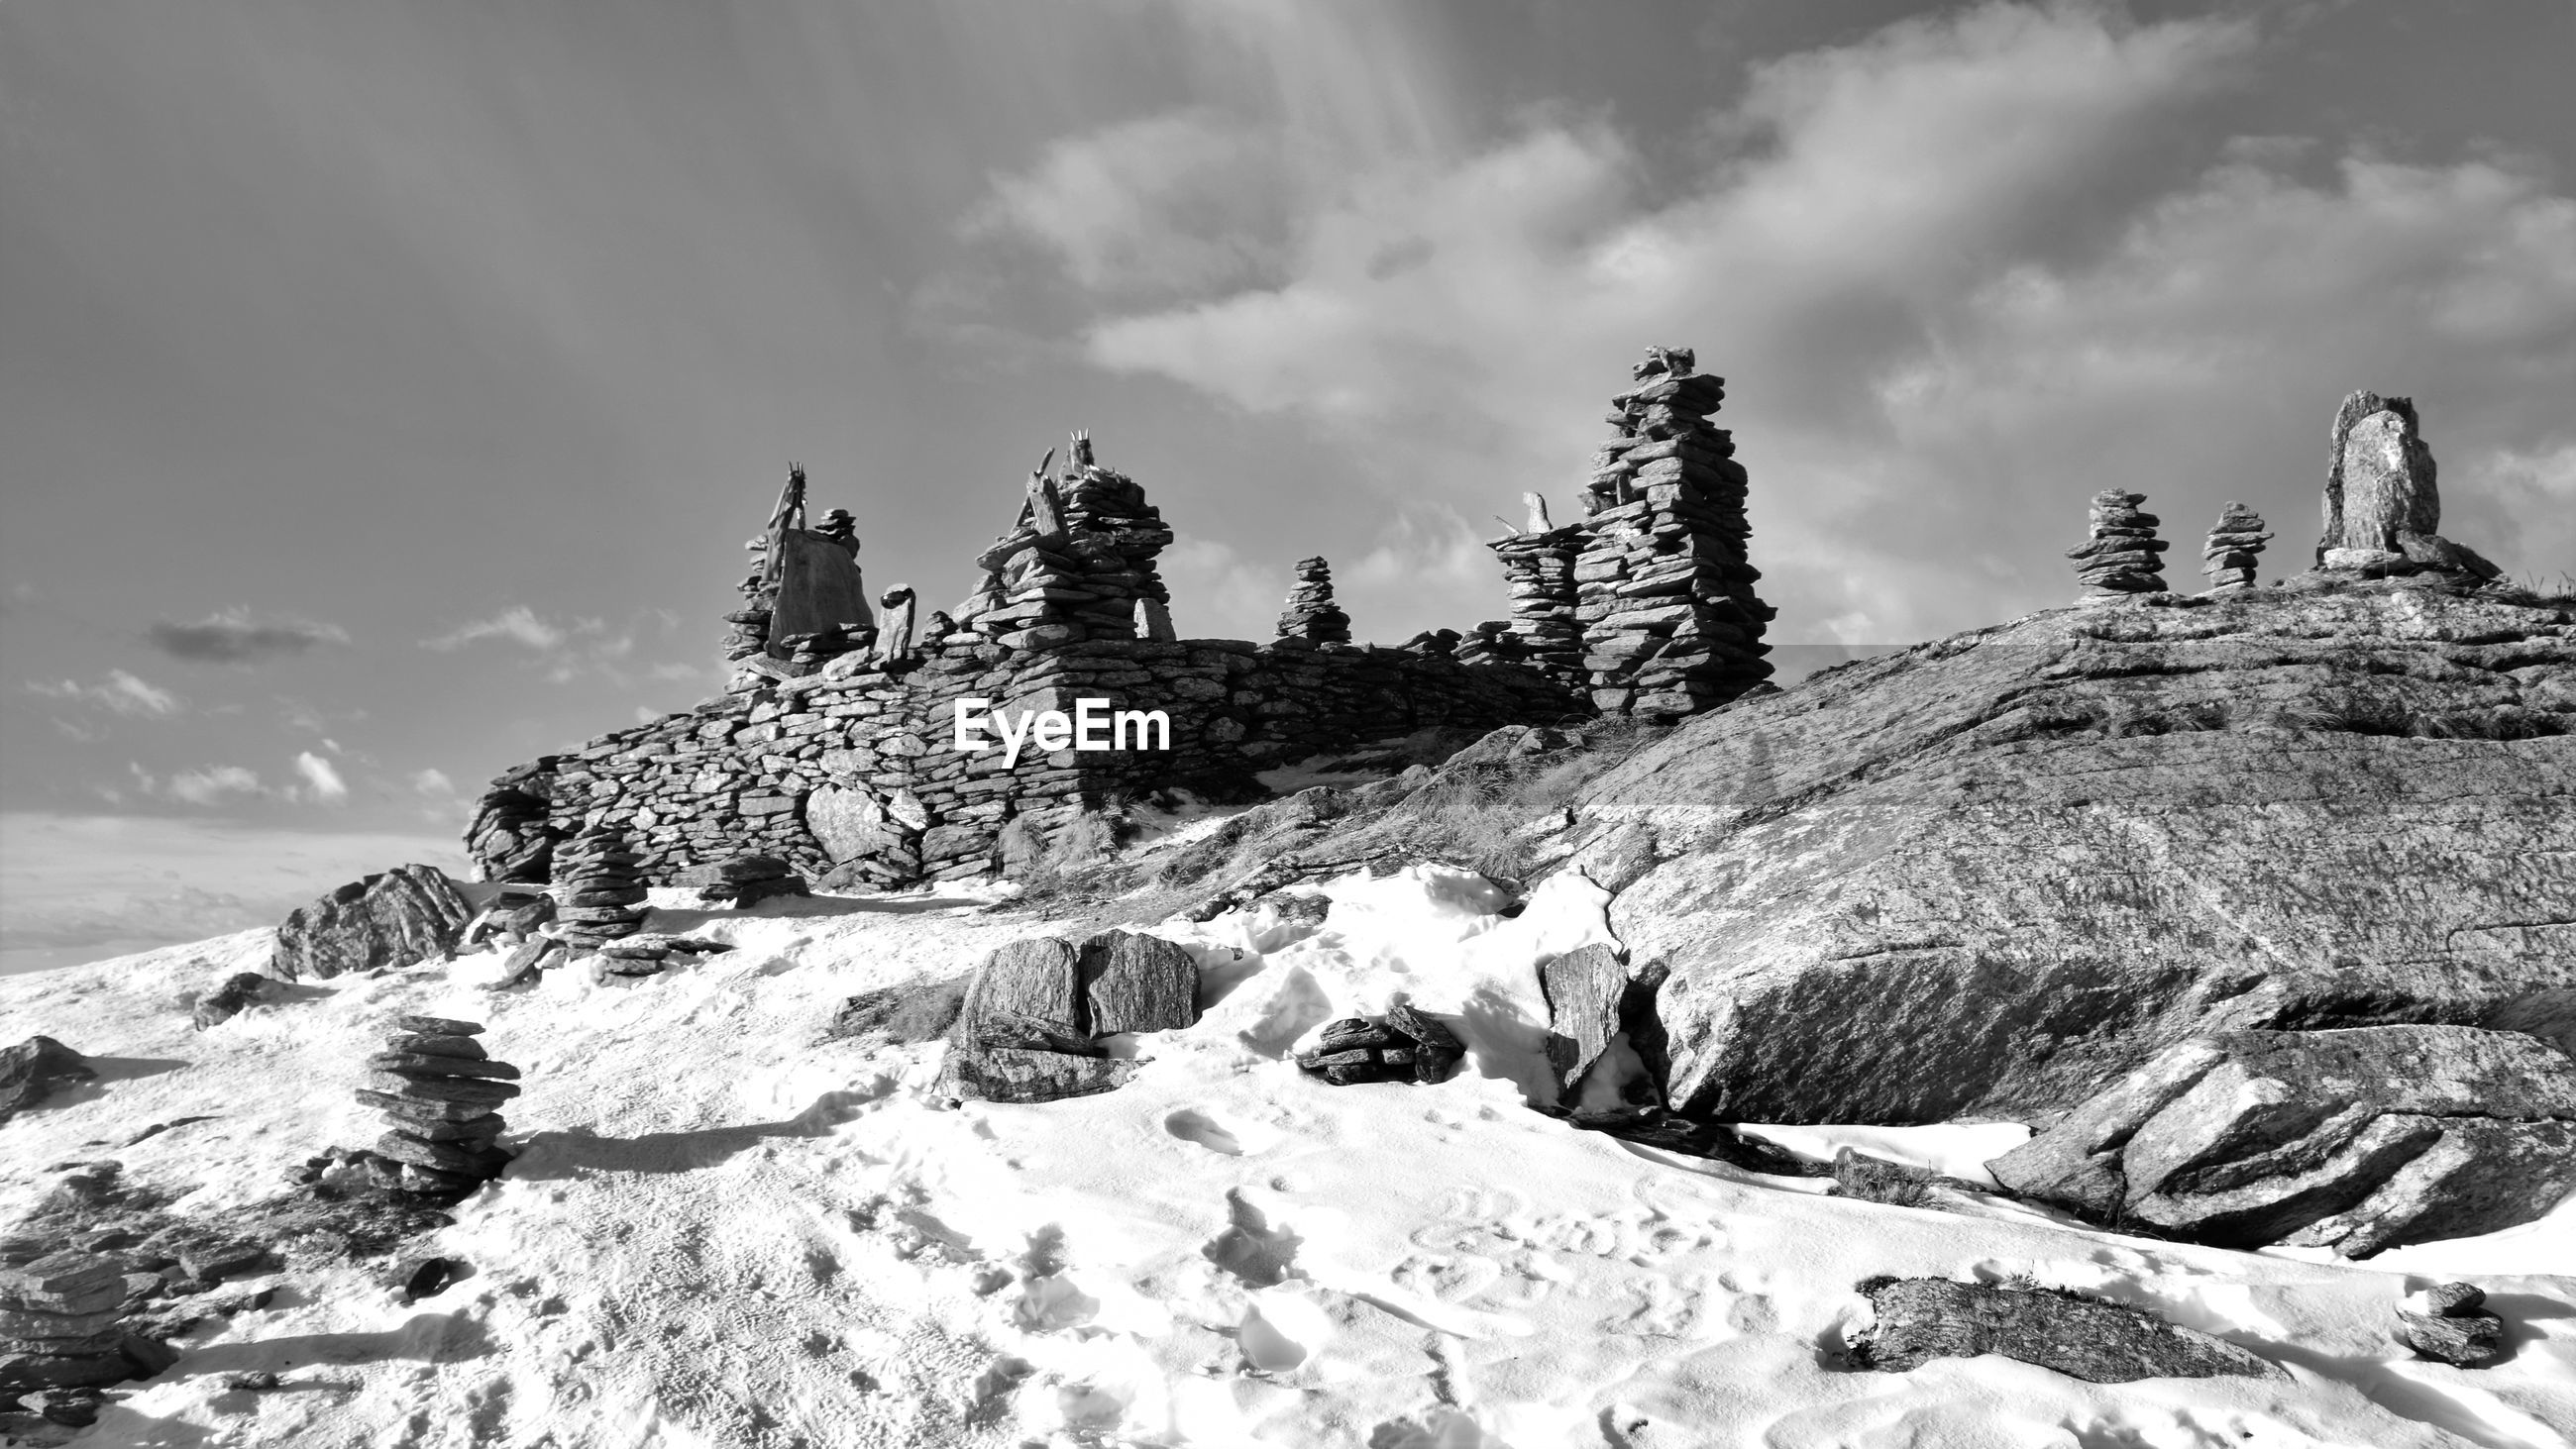 PANORAMIC VIEW OF ROCKS ON SNOW COVERED LAND